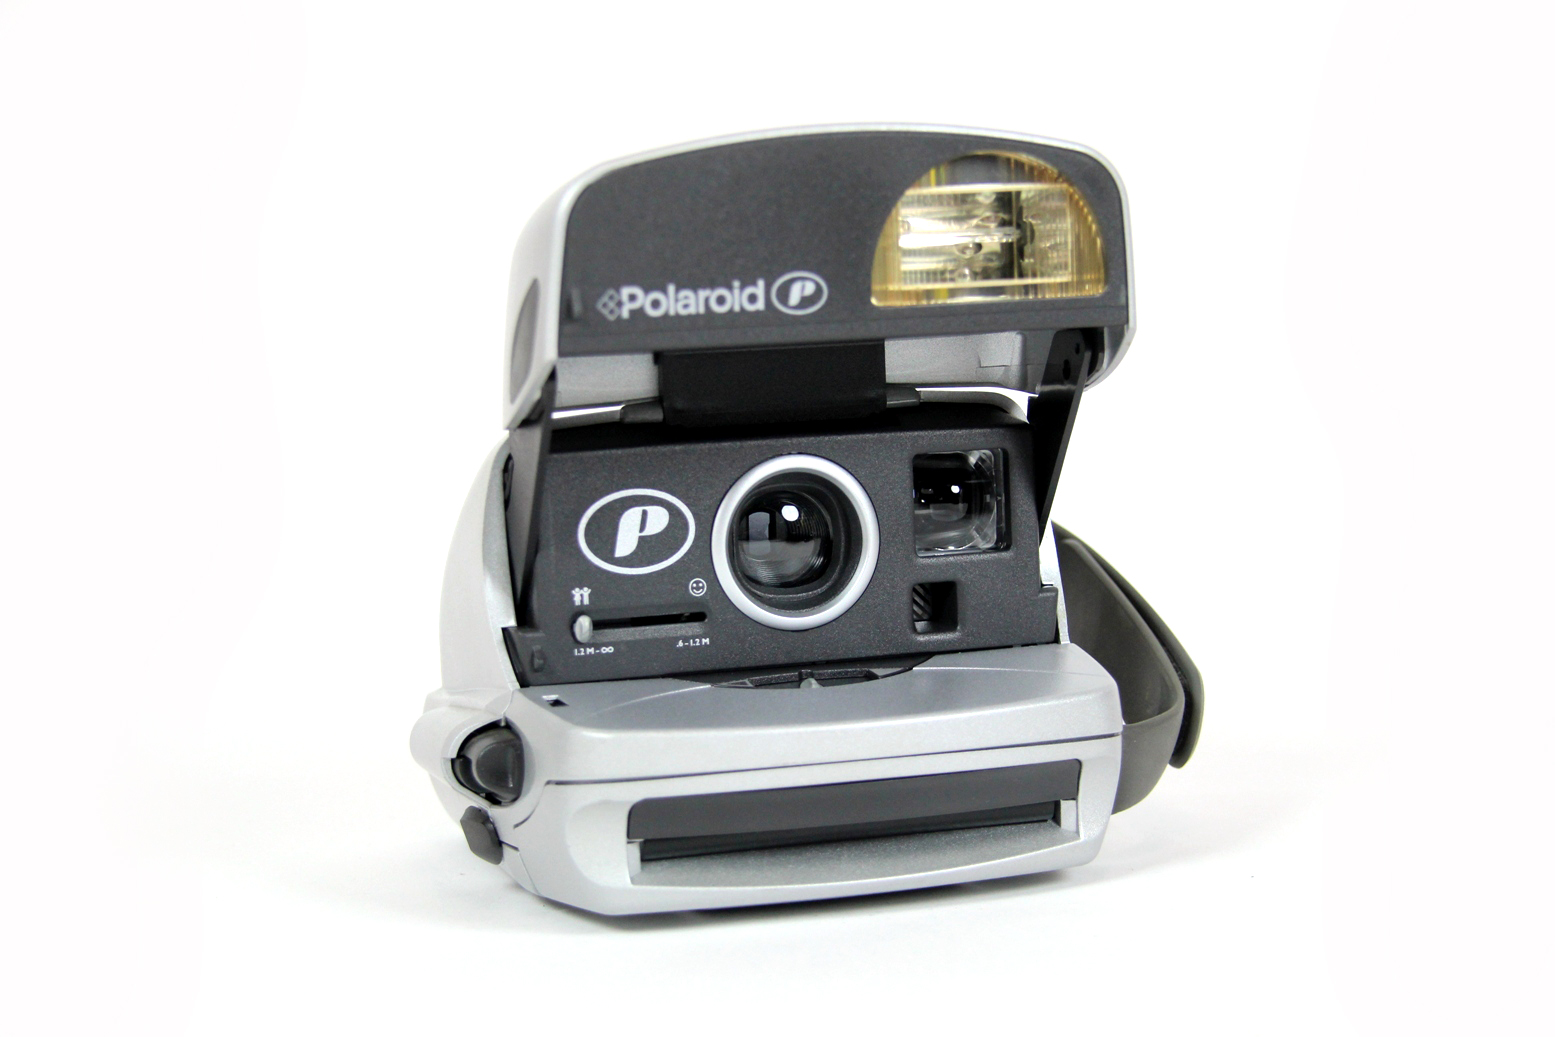 polaroid p 600 sofortbildkamera retro instant camera. Black Bedroom Furniture Sets. Home Design Ideas